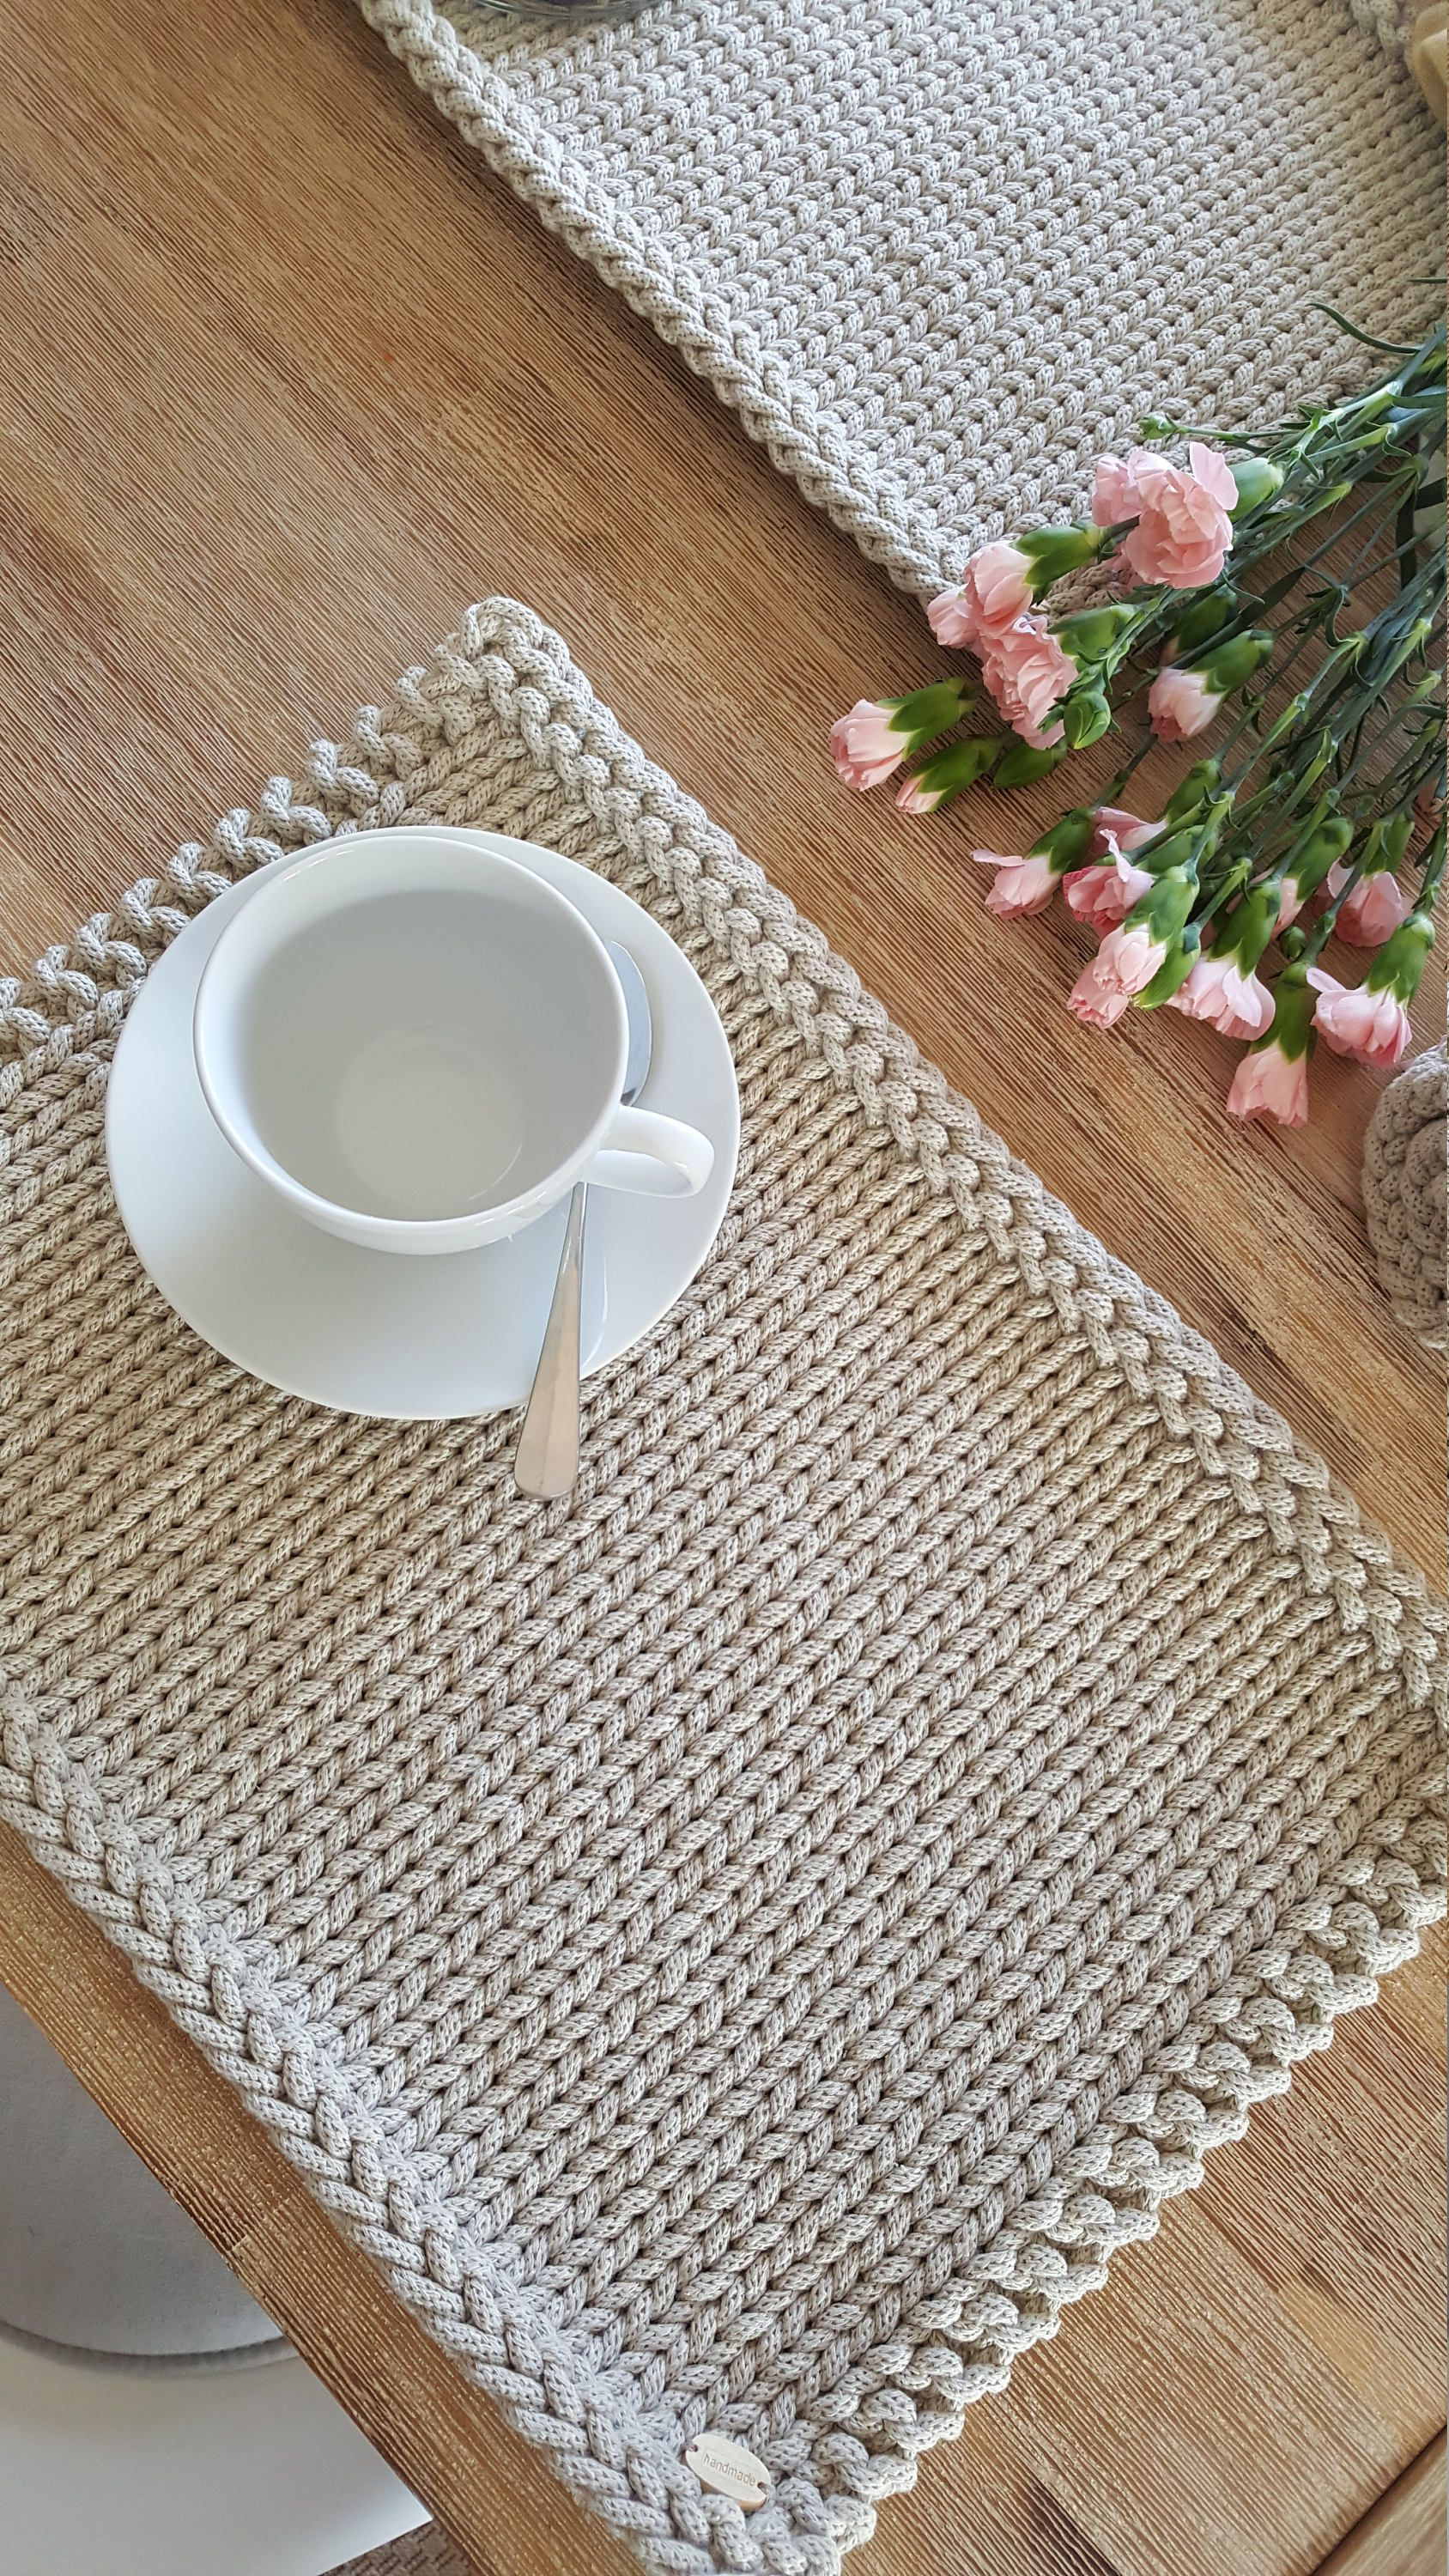 Placemats Knitted Set Of 6 Placemats Cotton Knitted Placemats Etsy Placemats Patterns Crochet Placemats Modern Placemats